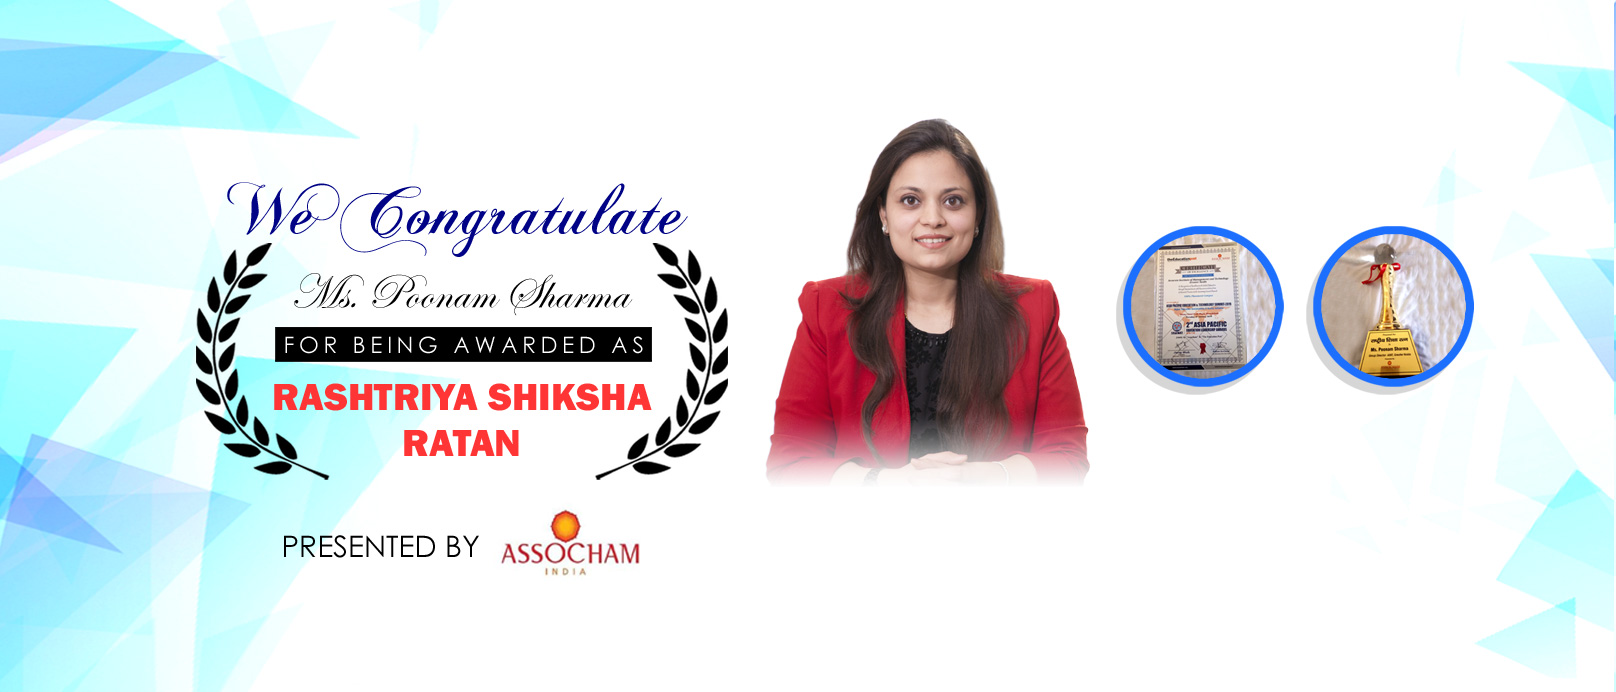 Award Mrs. Poonam Sharma